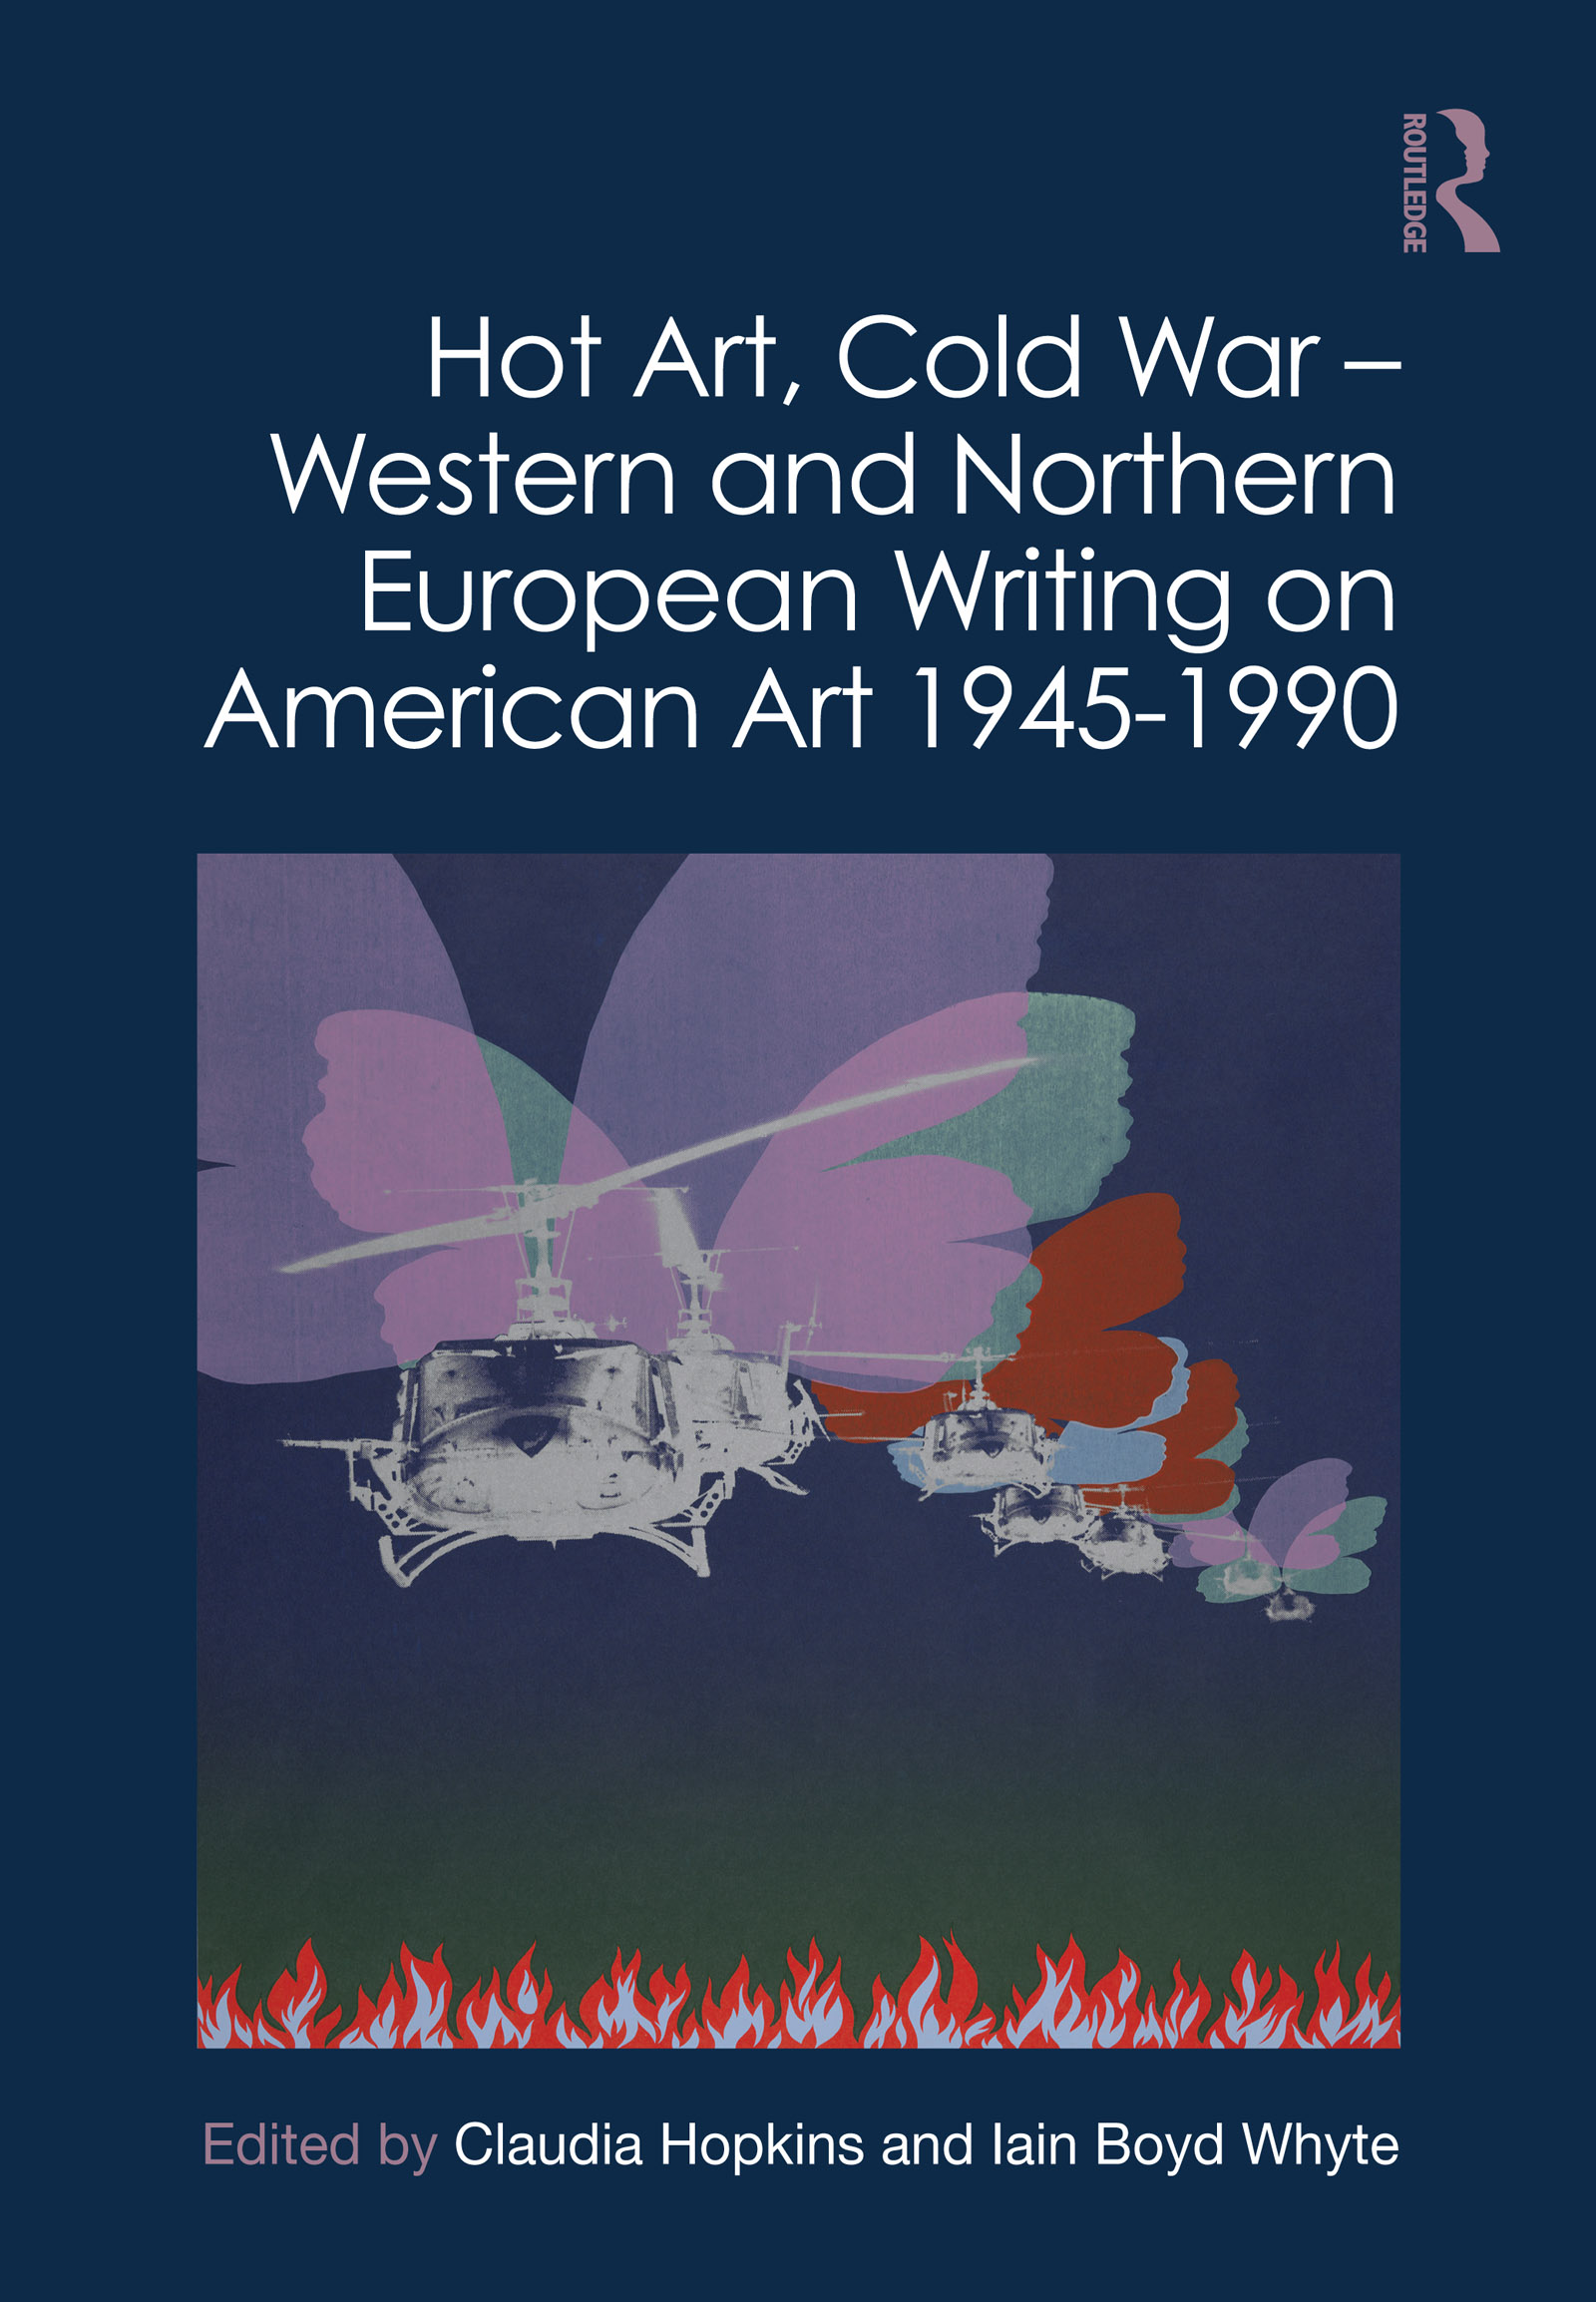 Hot Art, Cold War – Western and Northern European Writing on American Art 1945-1990 book cover